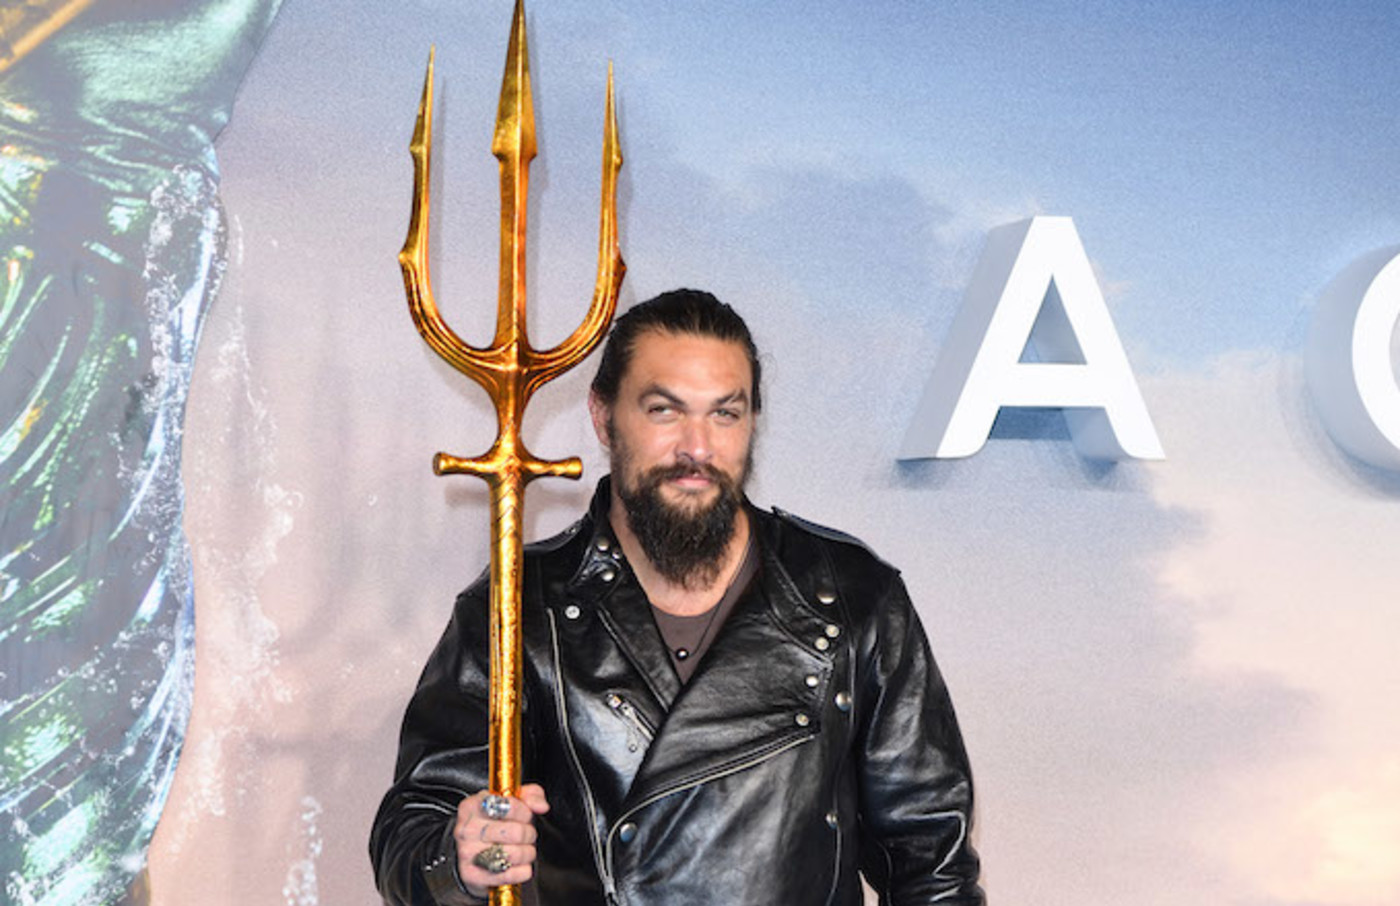 Jason Momoa attends the World Premiere of 'Aquaman' at Cineworld Leicester Square.